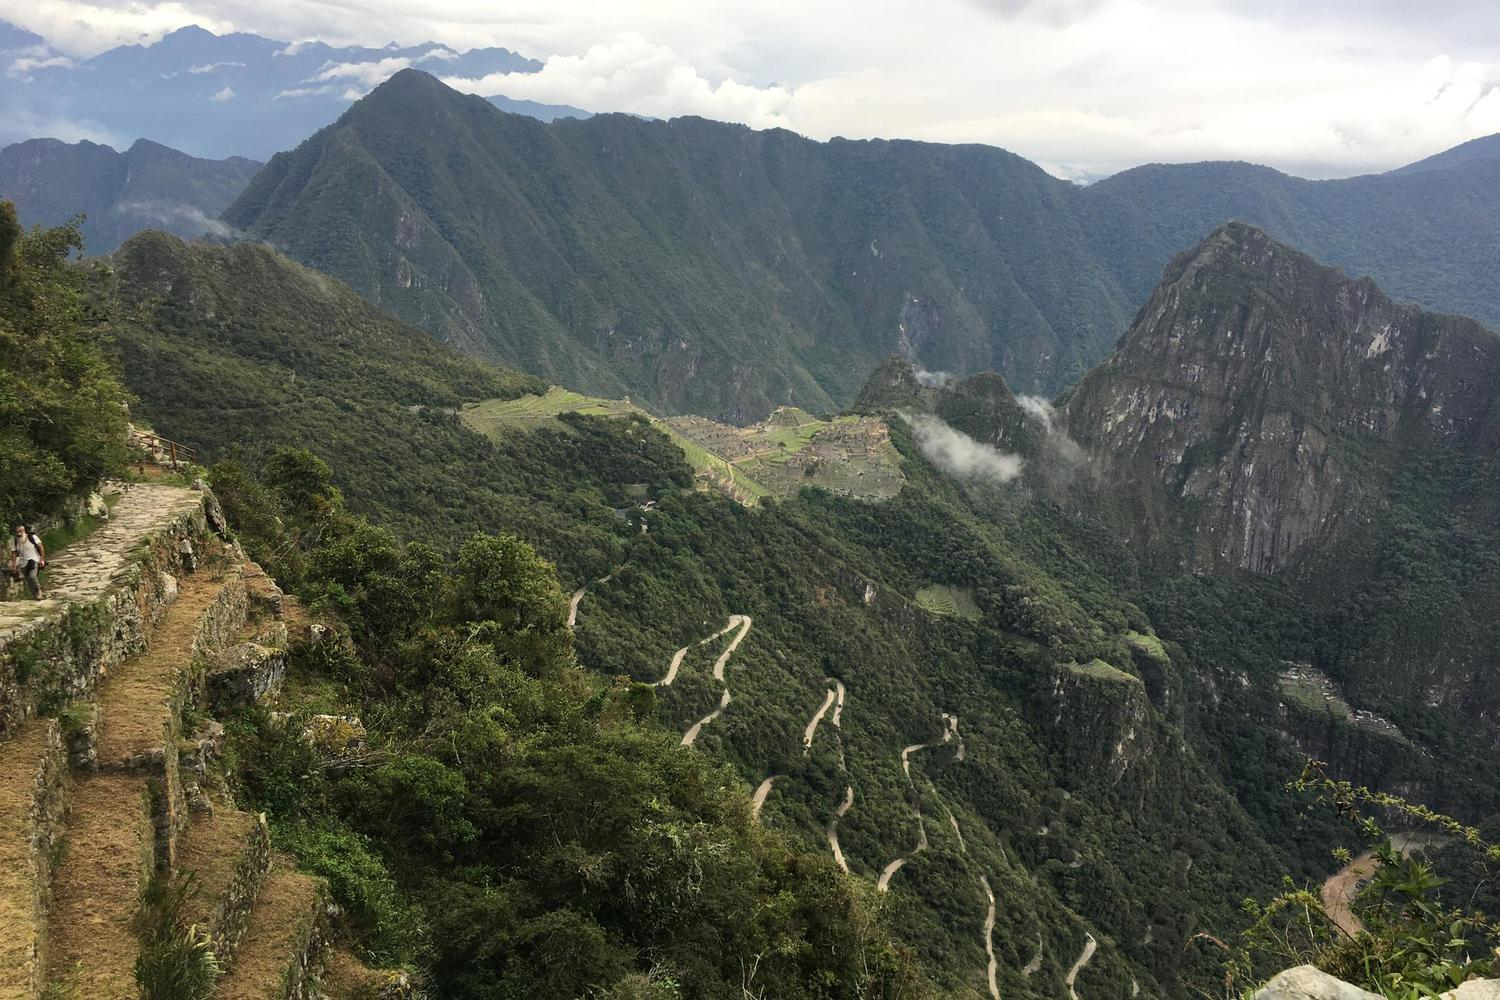 Arriving at Machu Picchu in the late afternoon, hardly another soul in sight